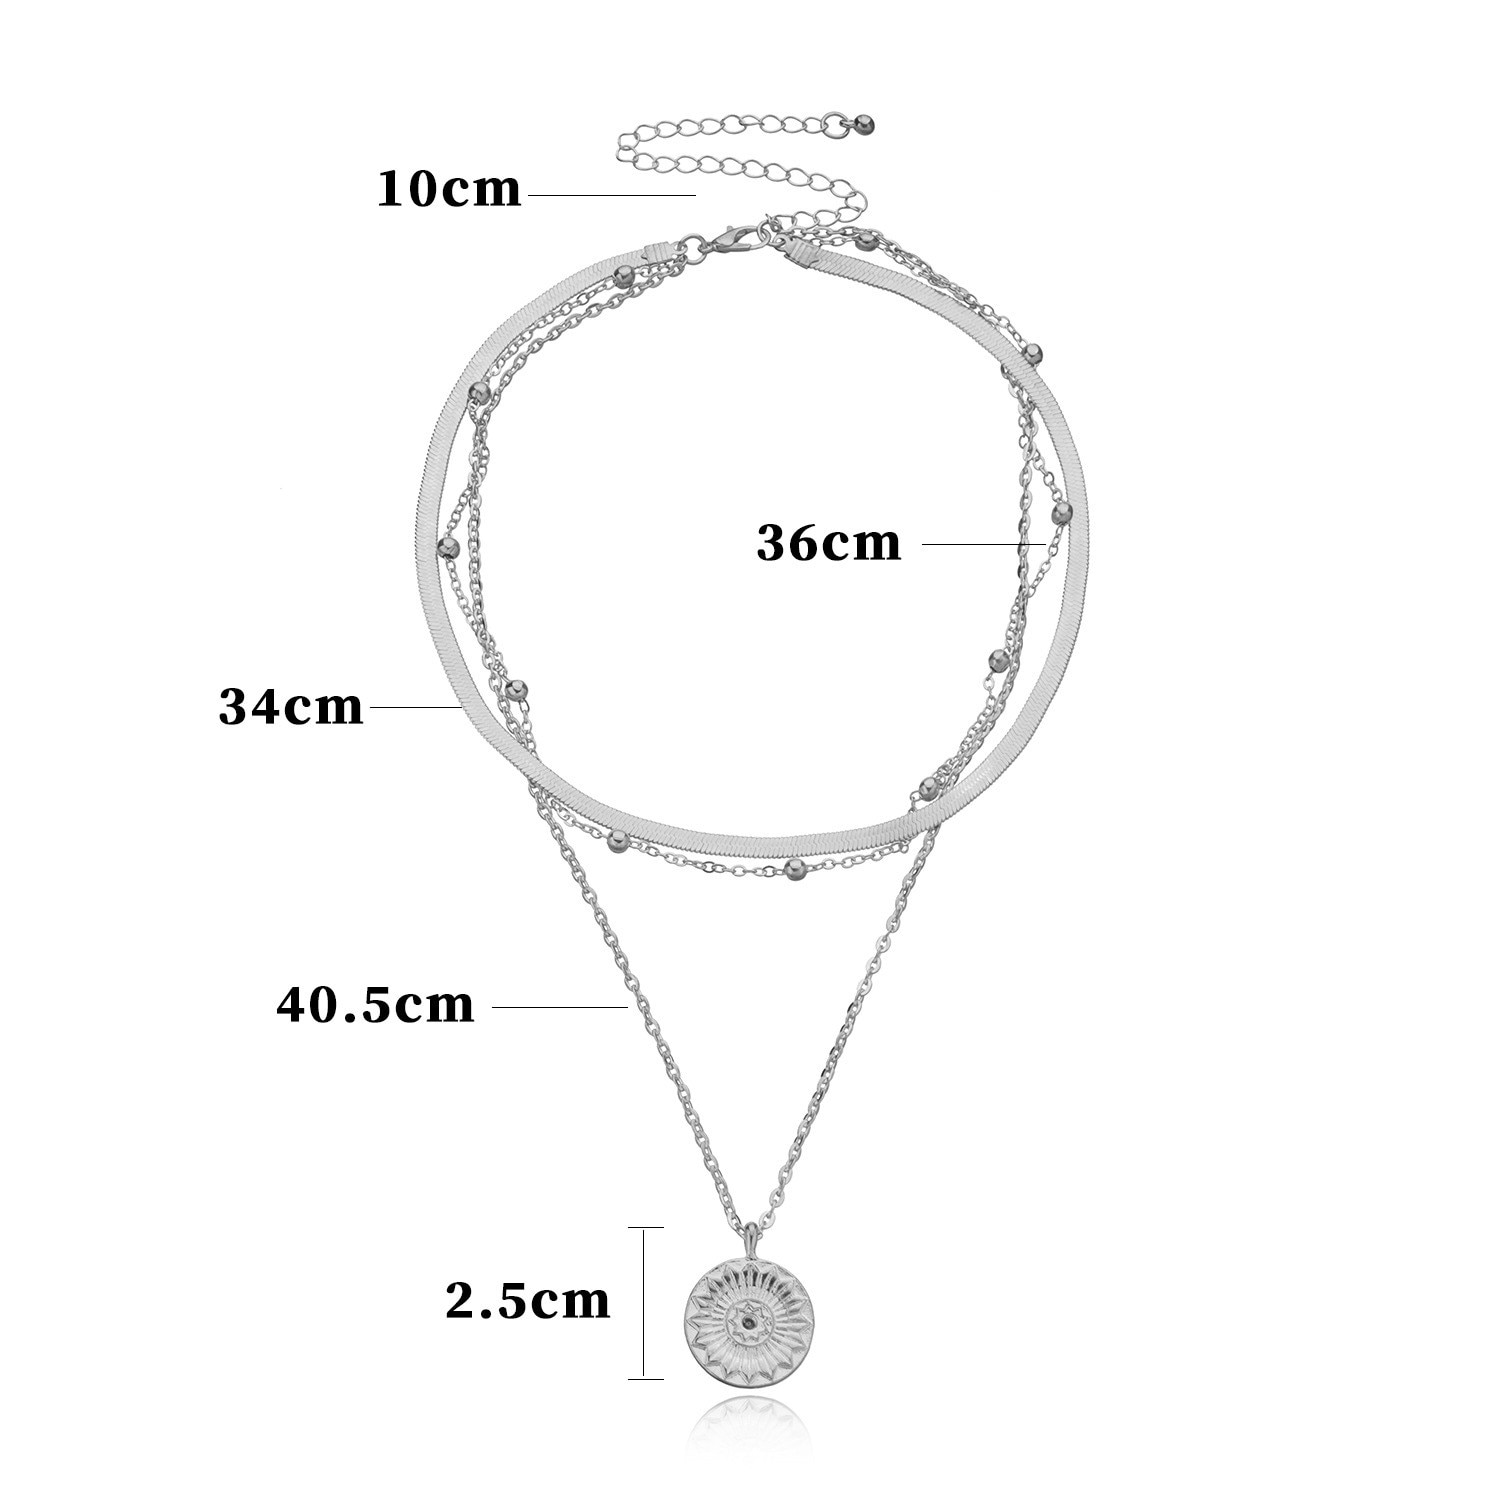 1 Set Fashionable Layered Round Hang Tag Chains Necklaces For Women Girls Trendy Classic Multi-layer Jewelry Gifts  - buy with discount